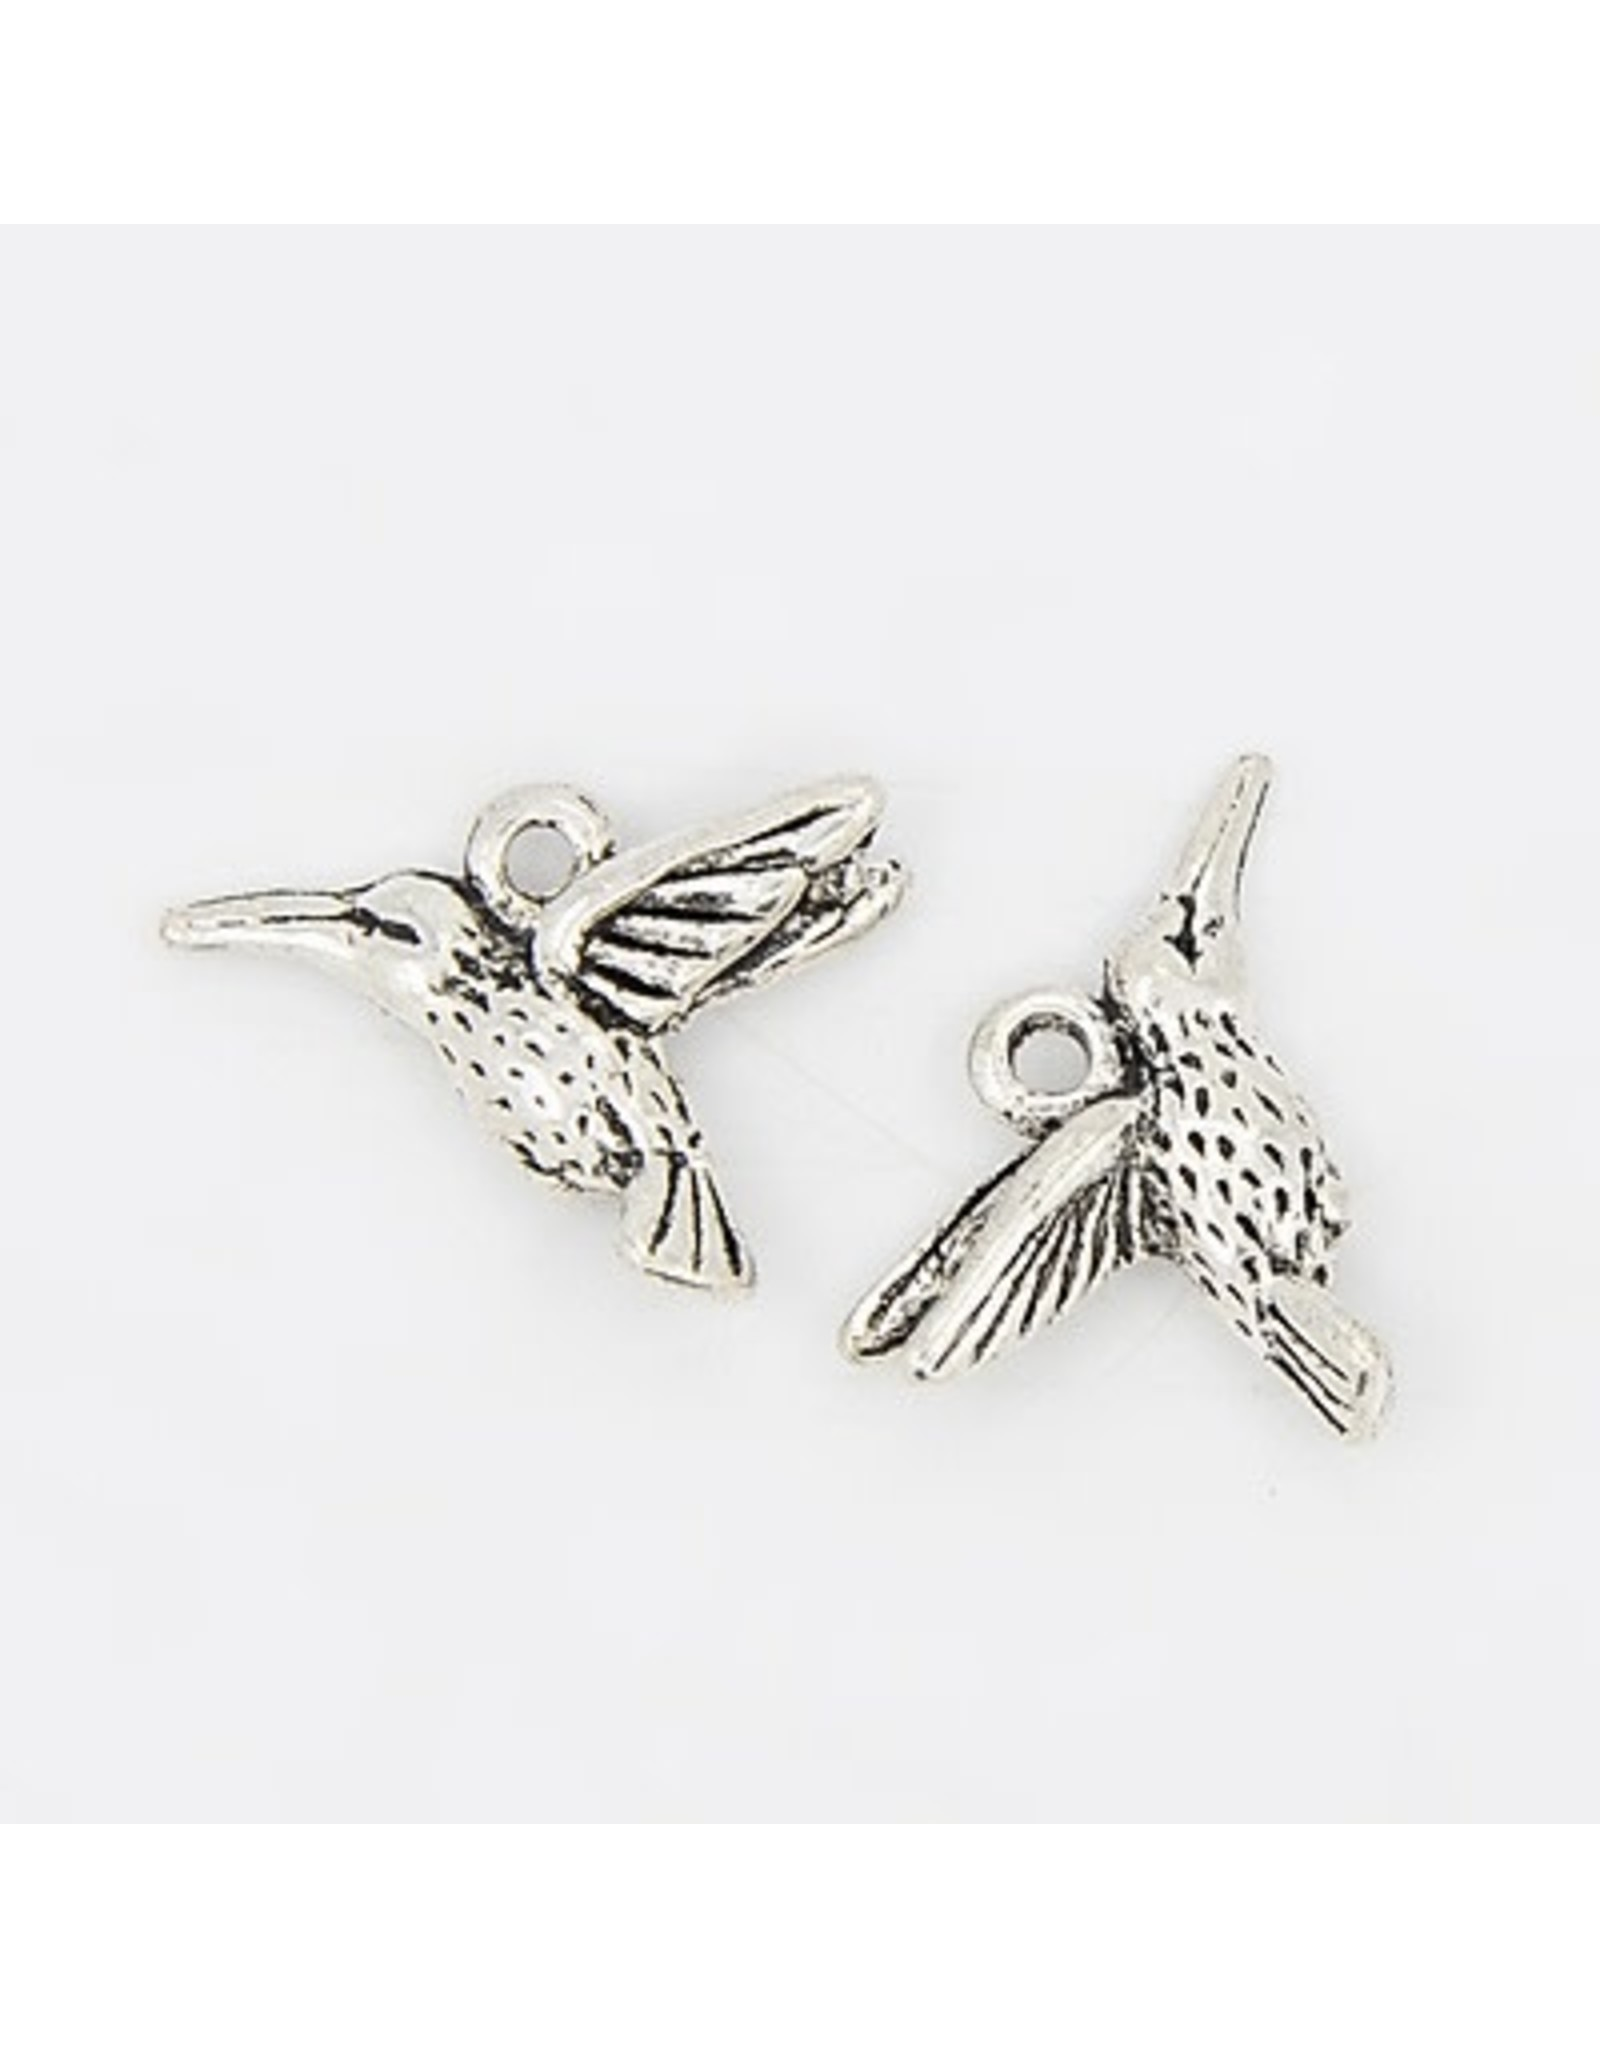 Hummingbird  20x15mm  Antique Silver  x10  NF